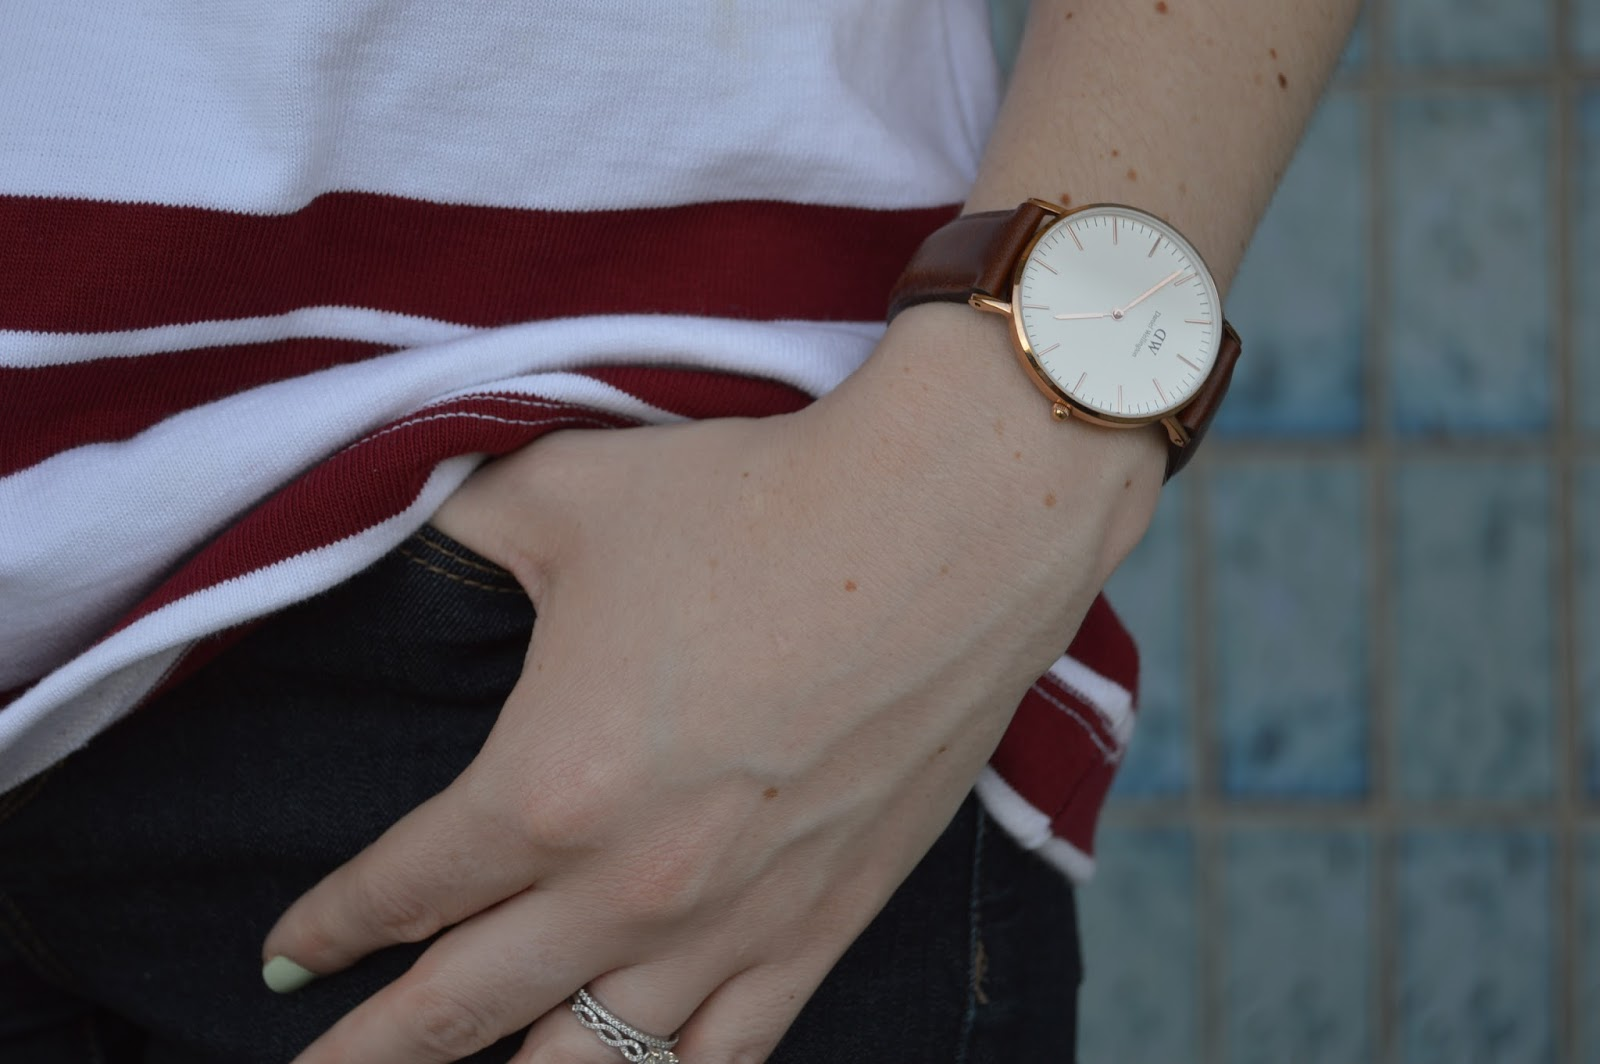 daniel wellington watch review | daniel wellington watch | a memory of us | summer outfit ideas |